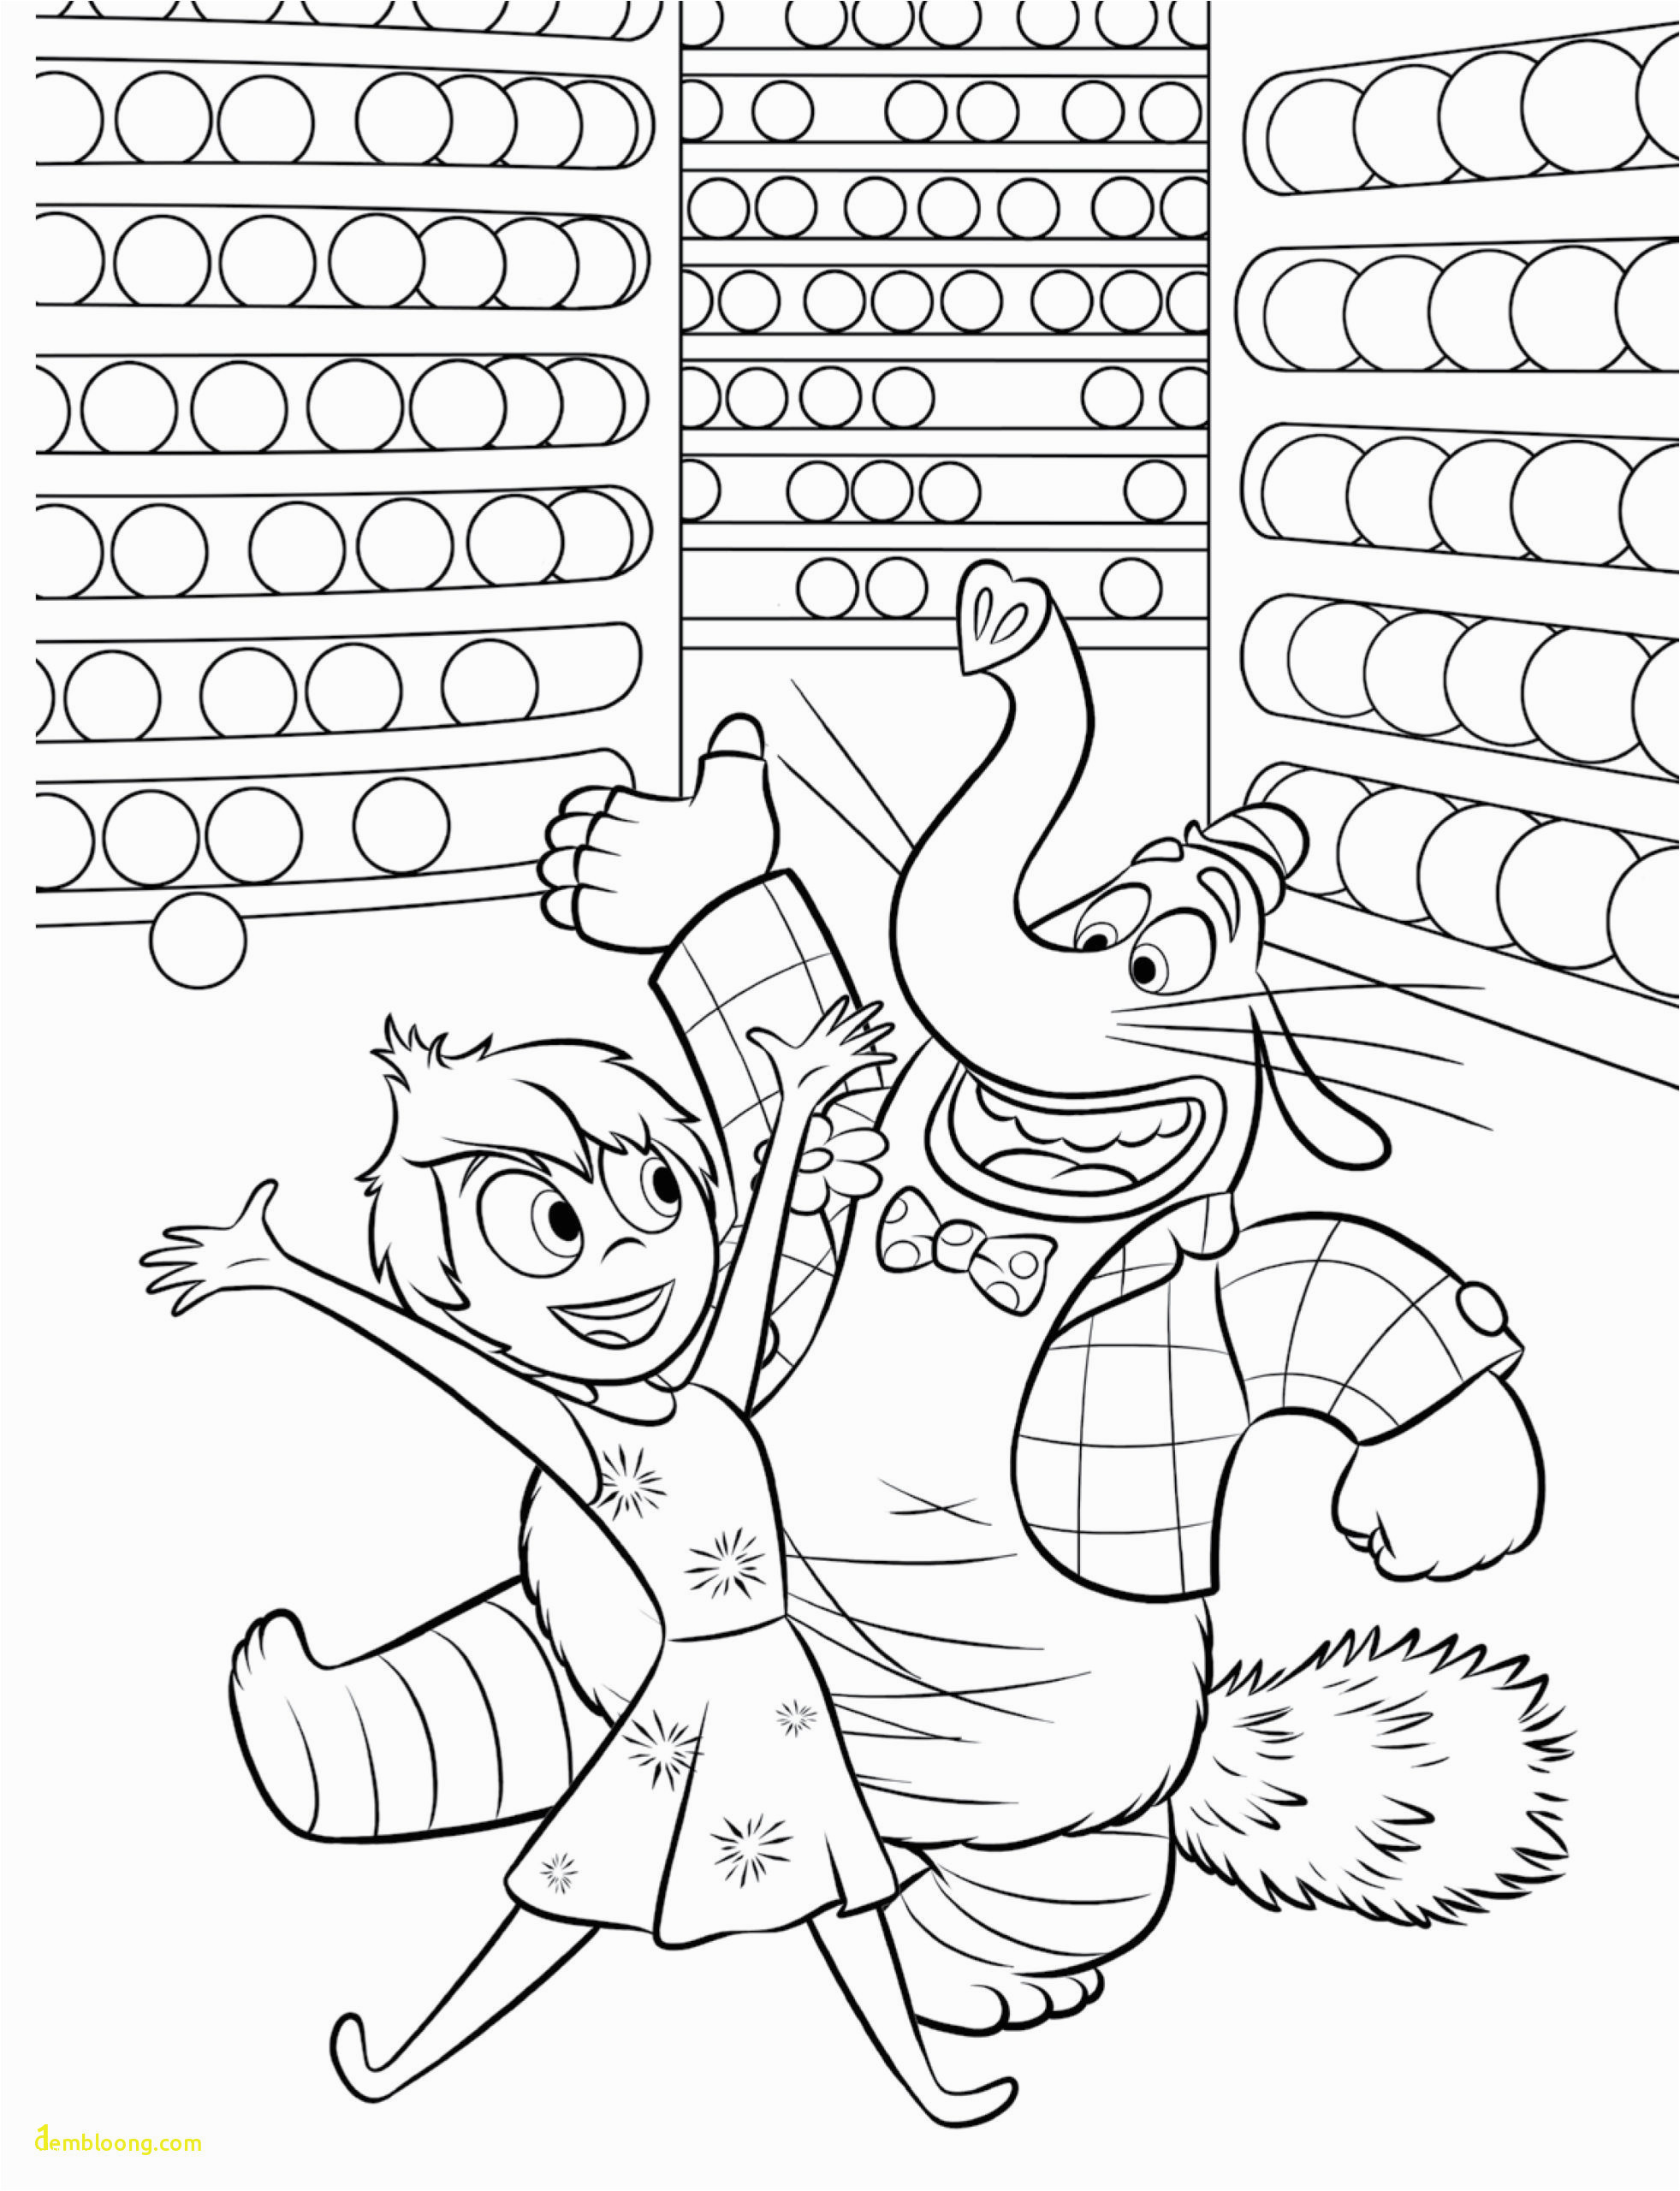 online colouring games for kids disney lovely coloring pages free printable color by number for adults of online colouring games for kids disney